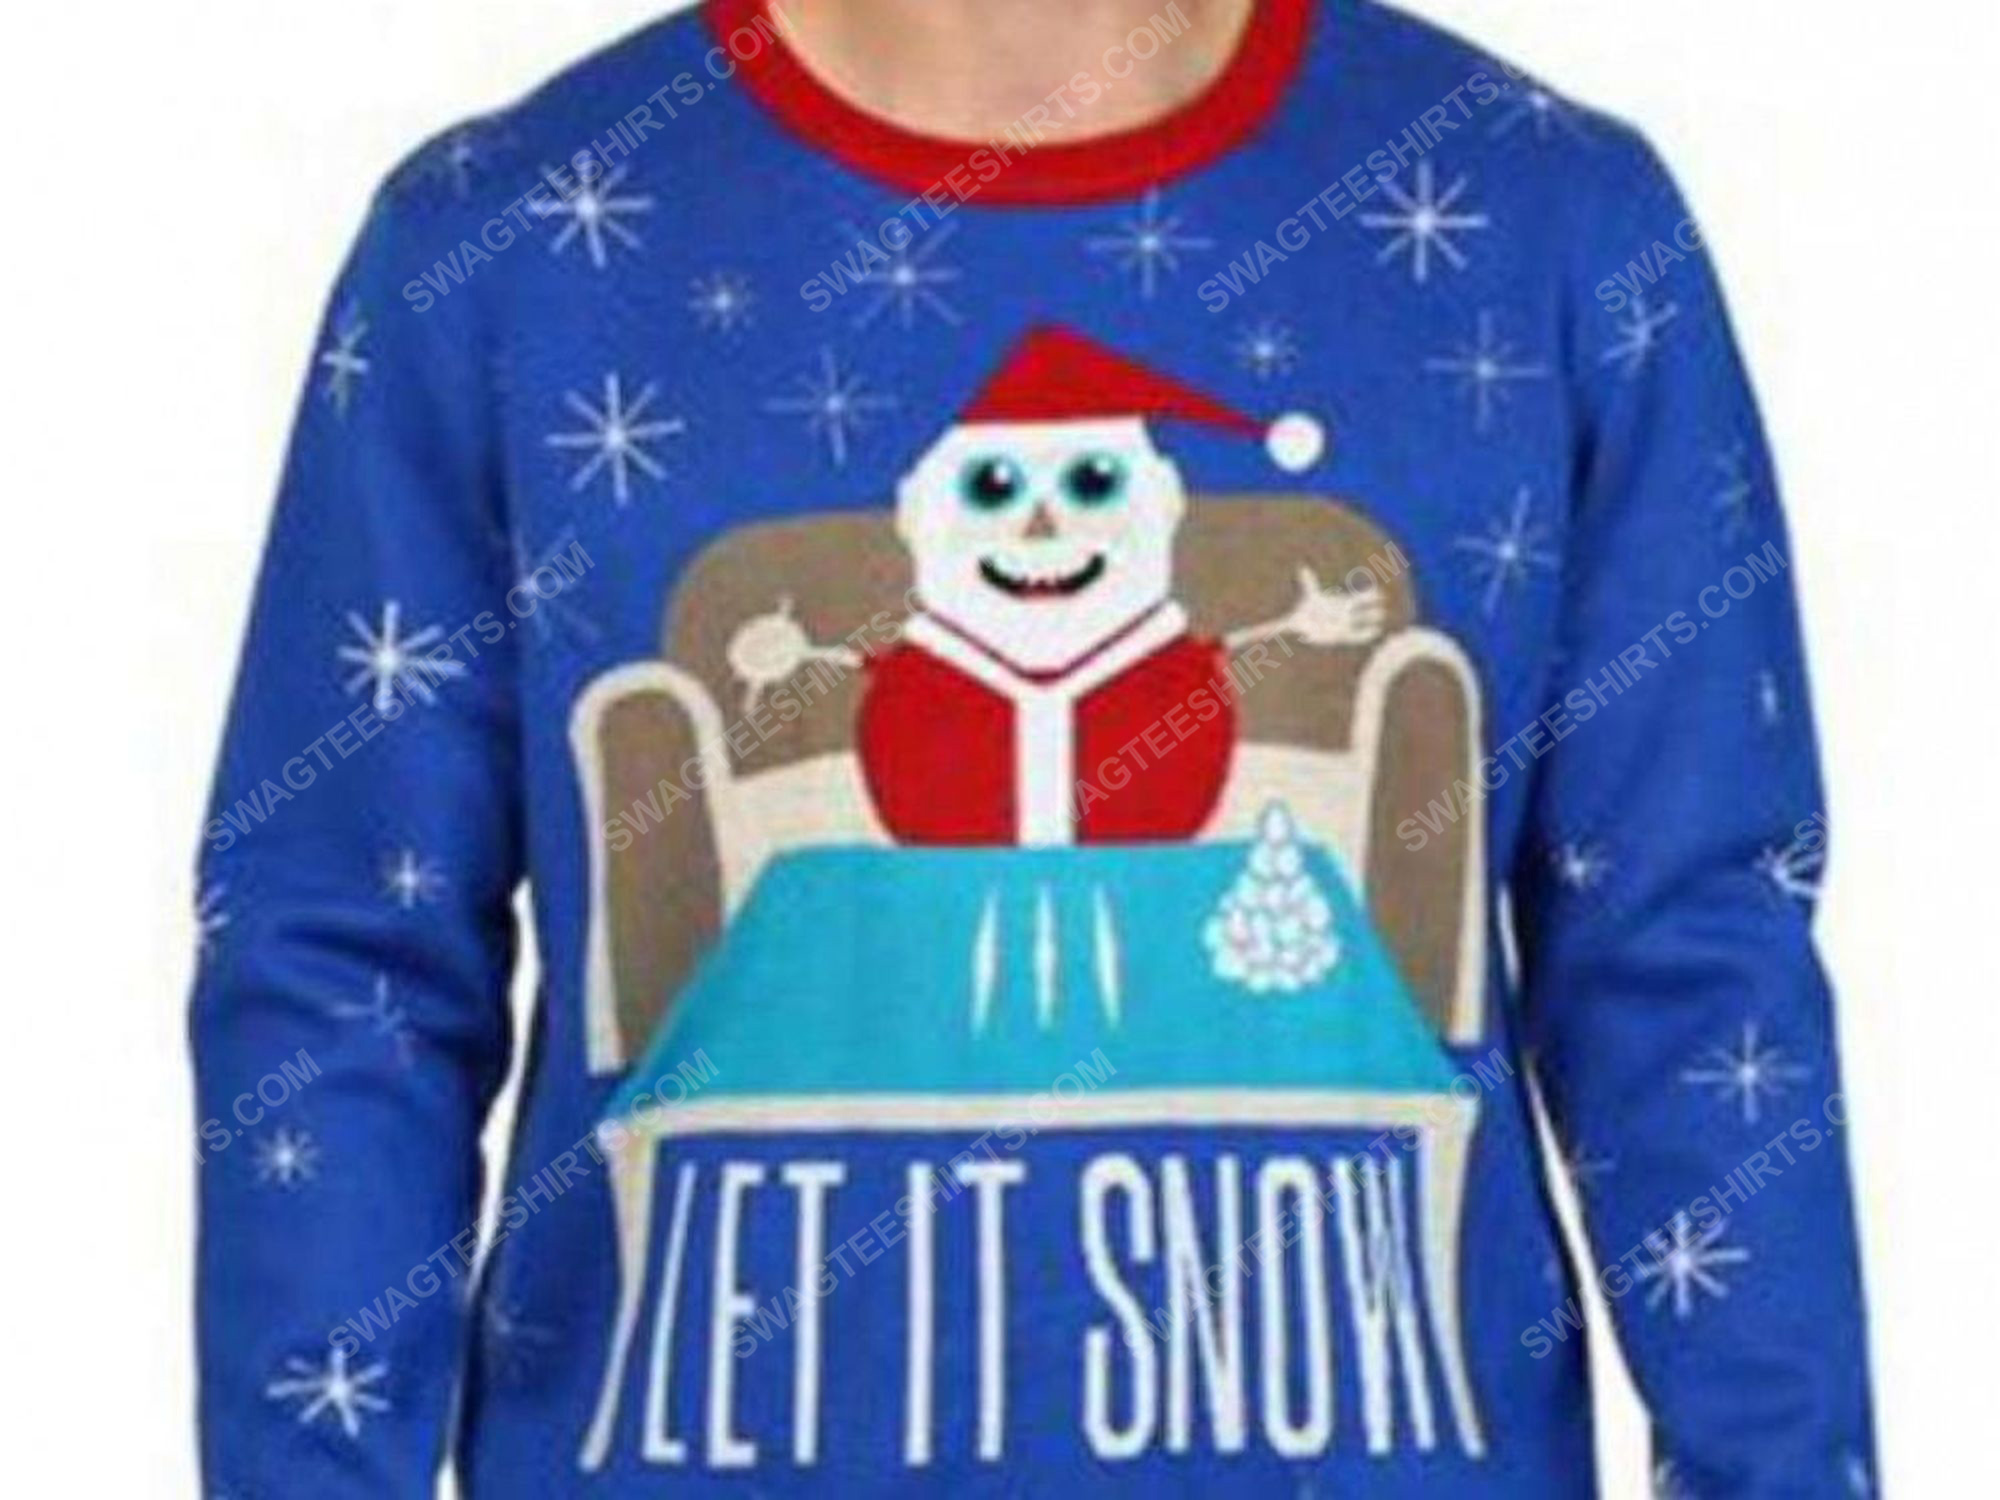 Christmas party let it snow cocaine full print ugly christmas sweater 2 - Copy (2)